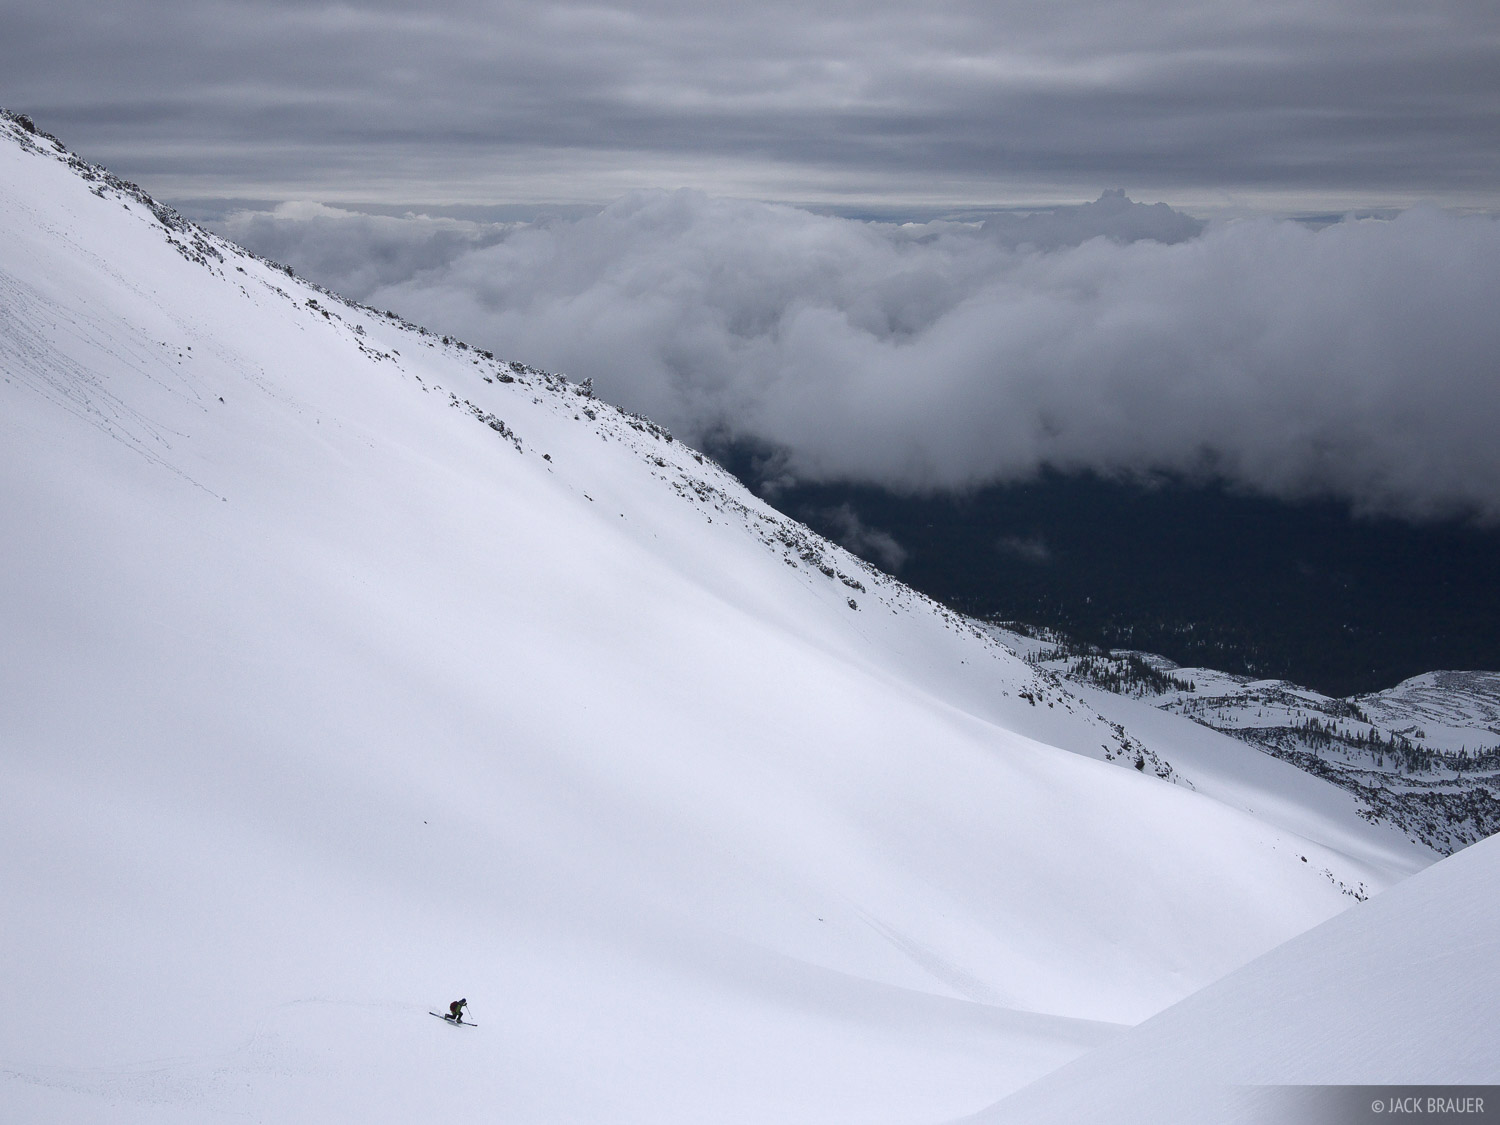 Mt. Saint Helens, Washington, skiing, ski, photo